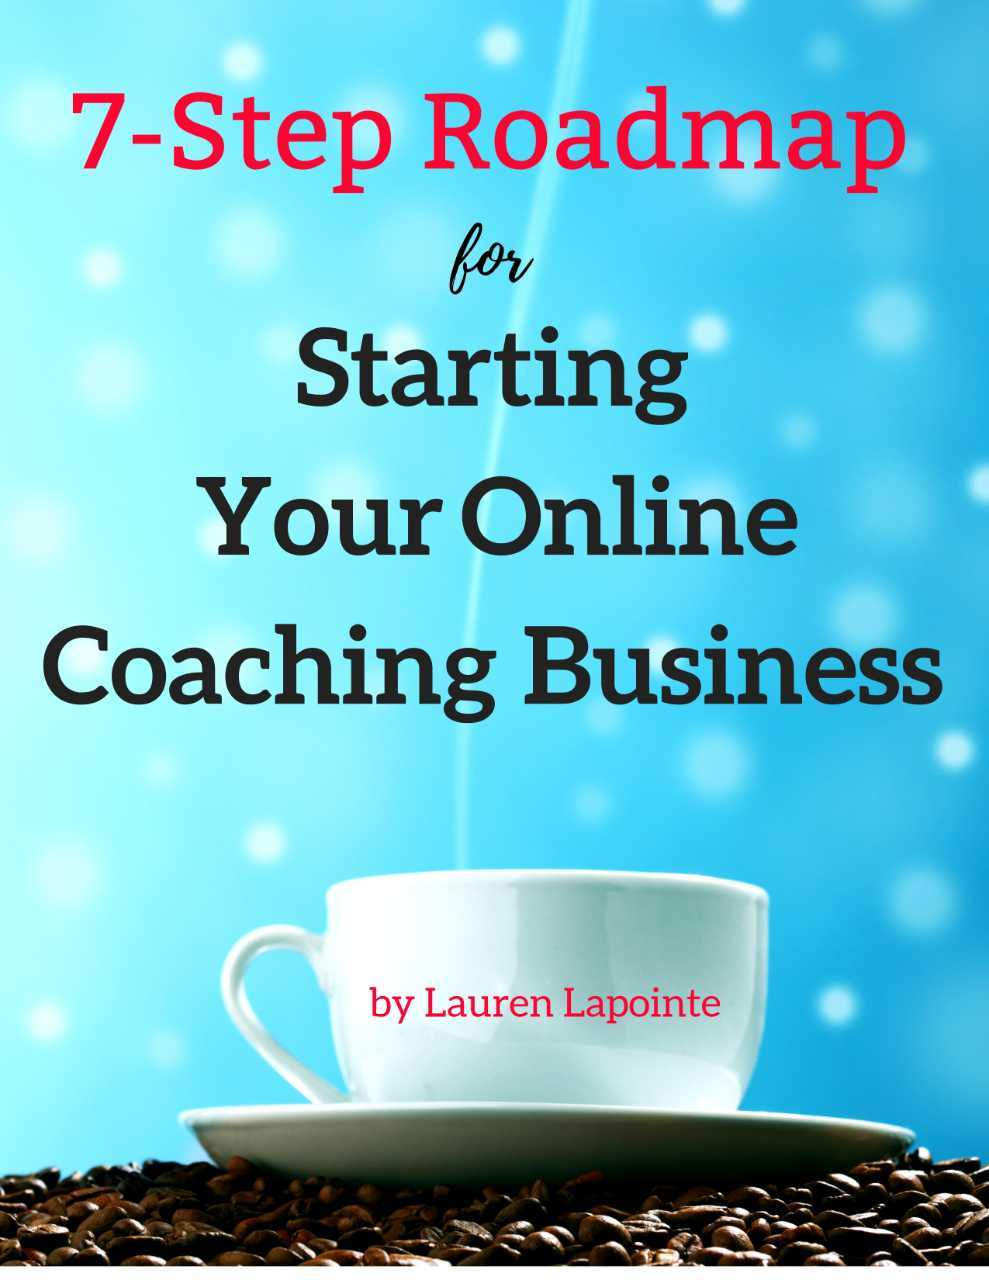 RS-7 Step Roadmap for Starting Your Online Coaching Business